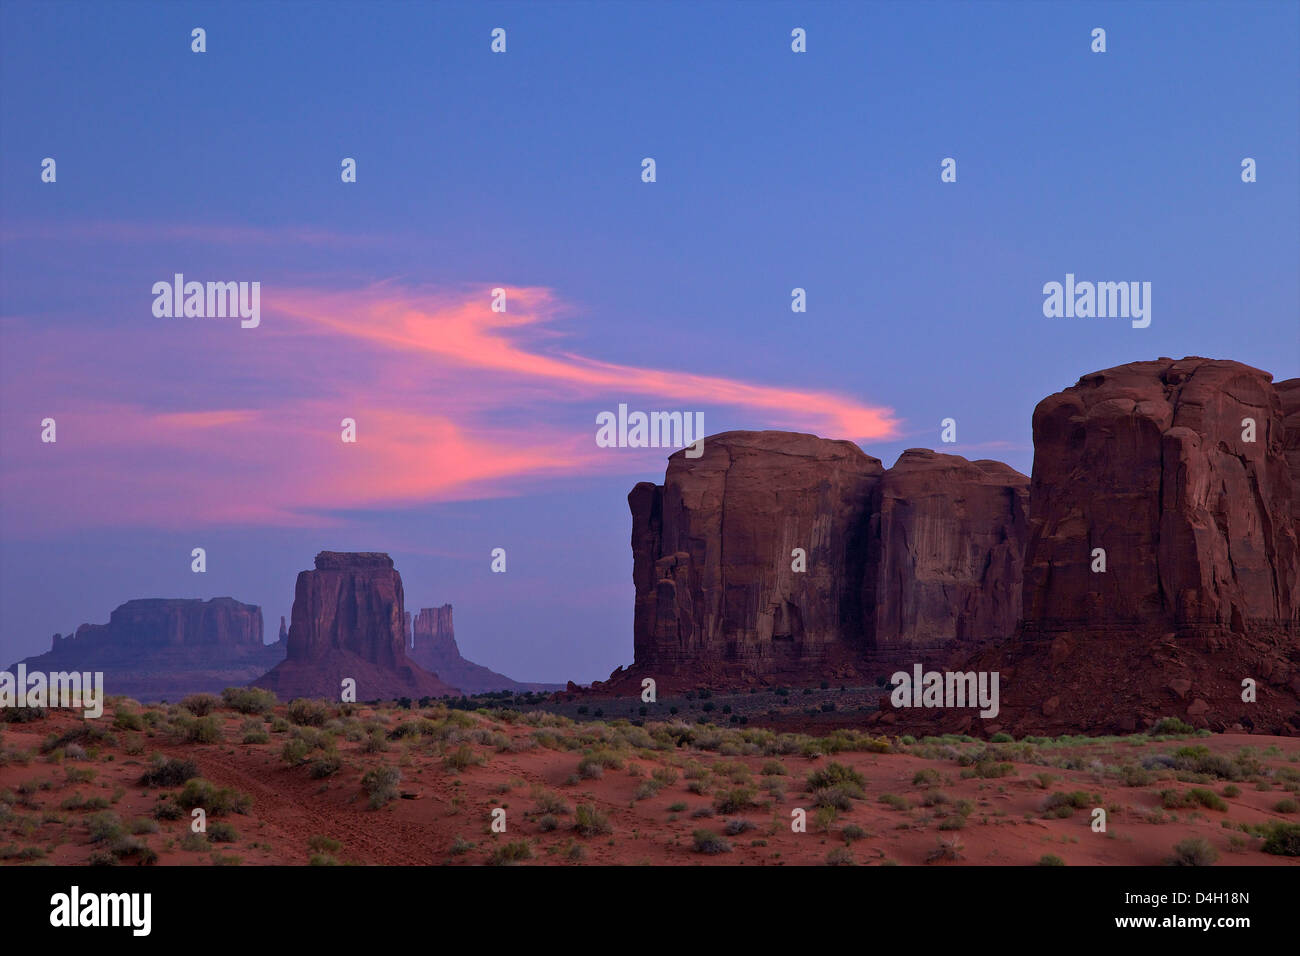 Dawn clouds over Monument Valley Navajo Tribal Park, Utah, USA - Stock Image